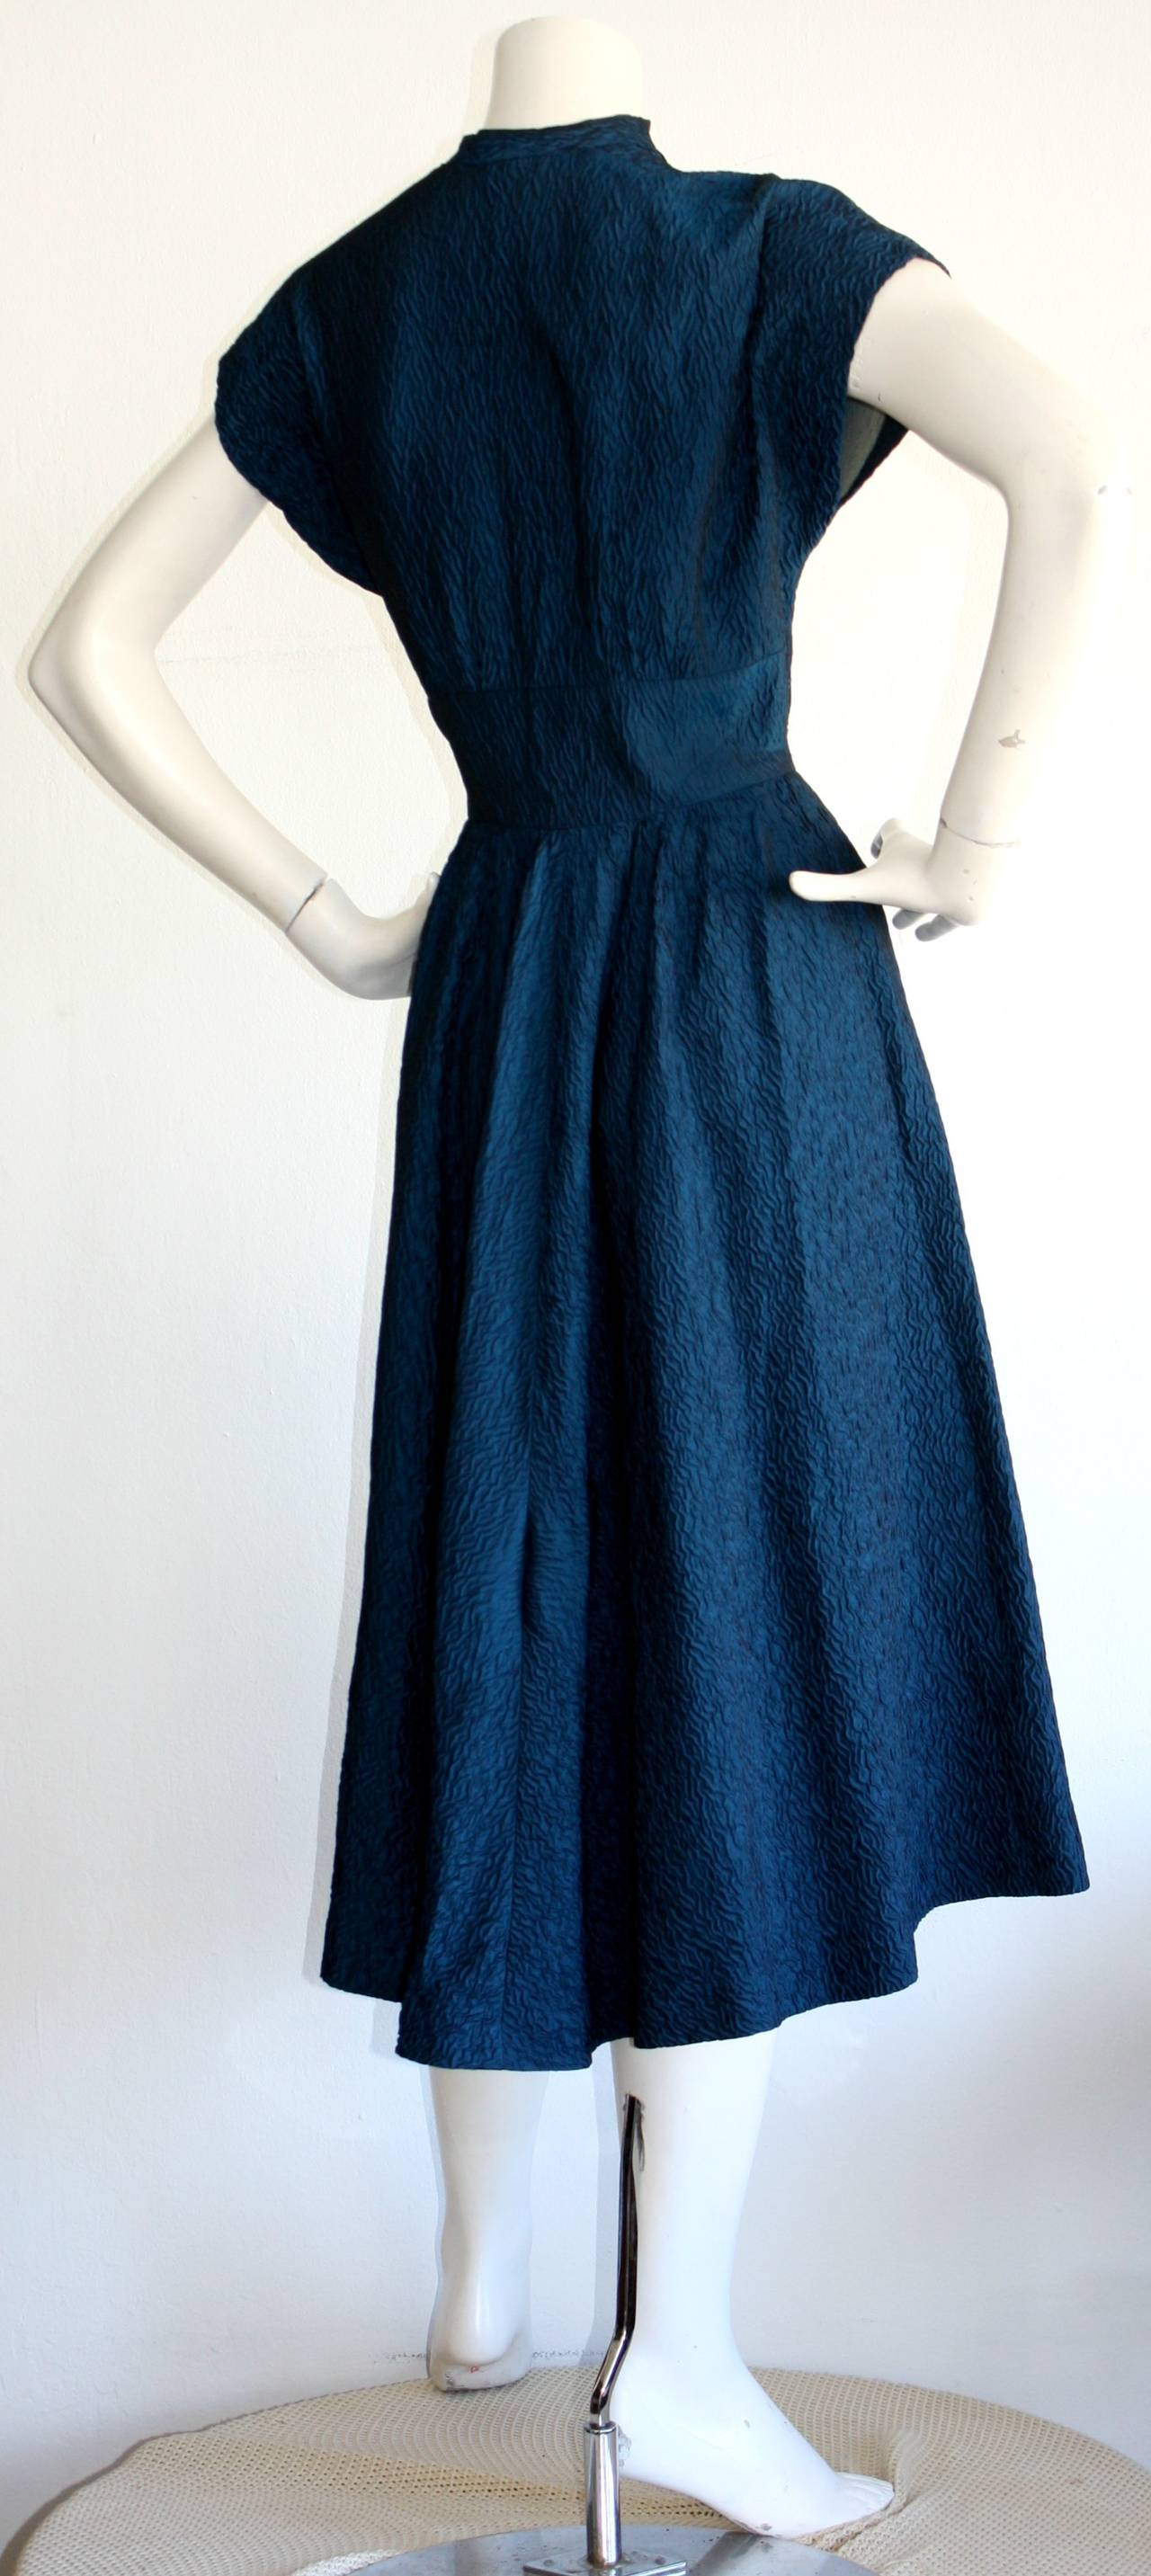 Ultimate Vintage 1940s Dress Blue Textured Silk W/ Dramatic Neck 3